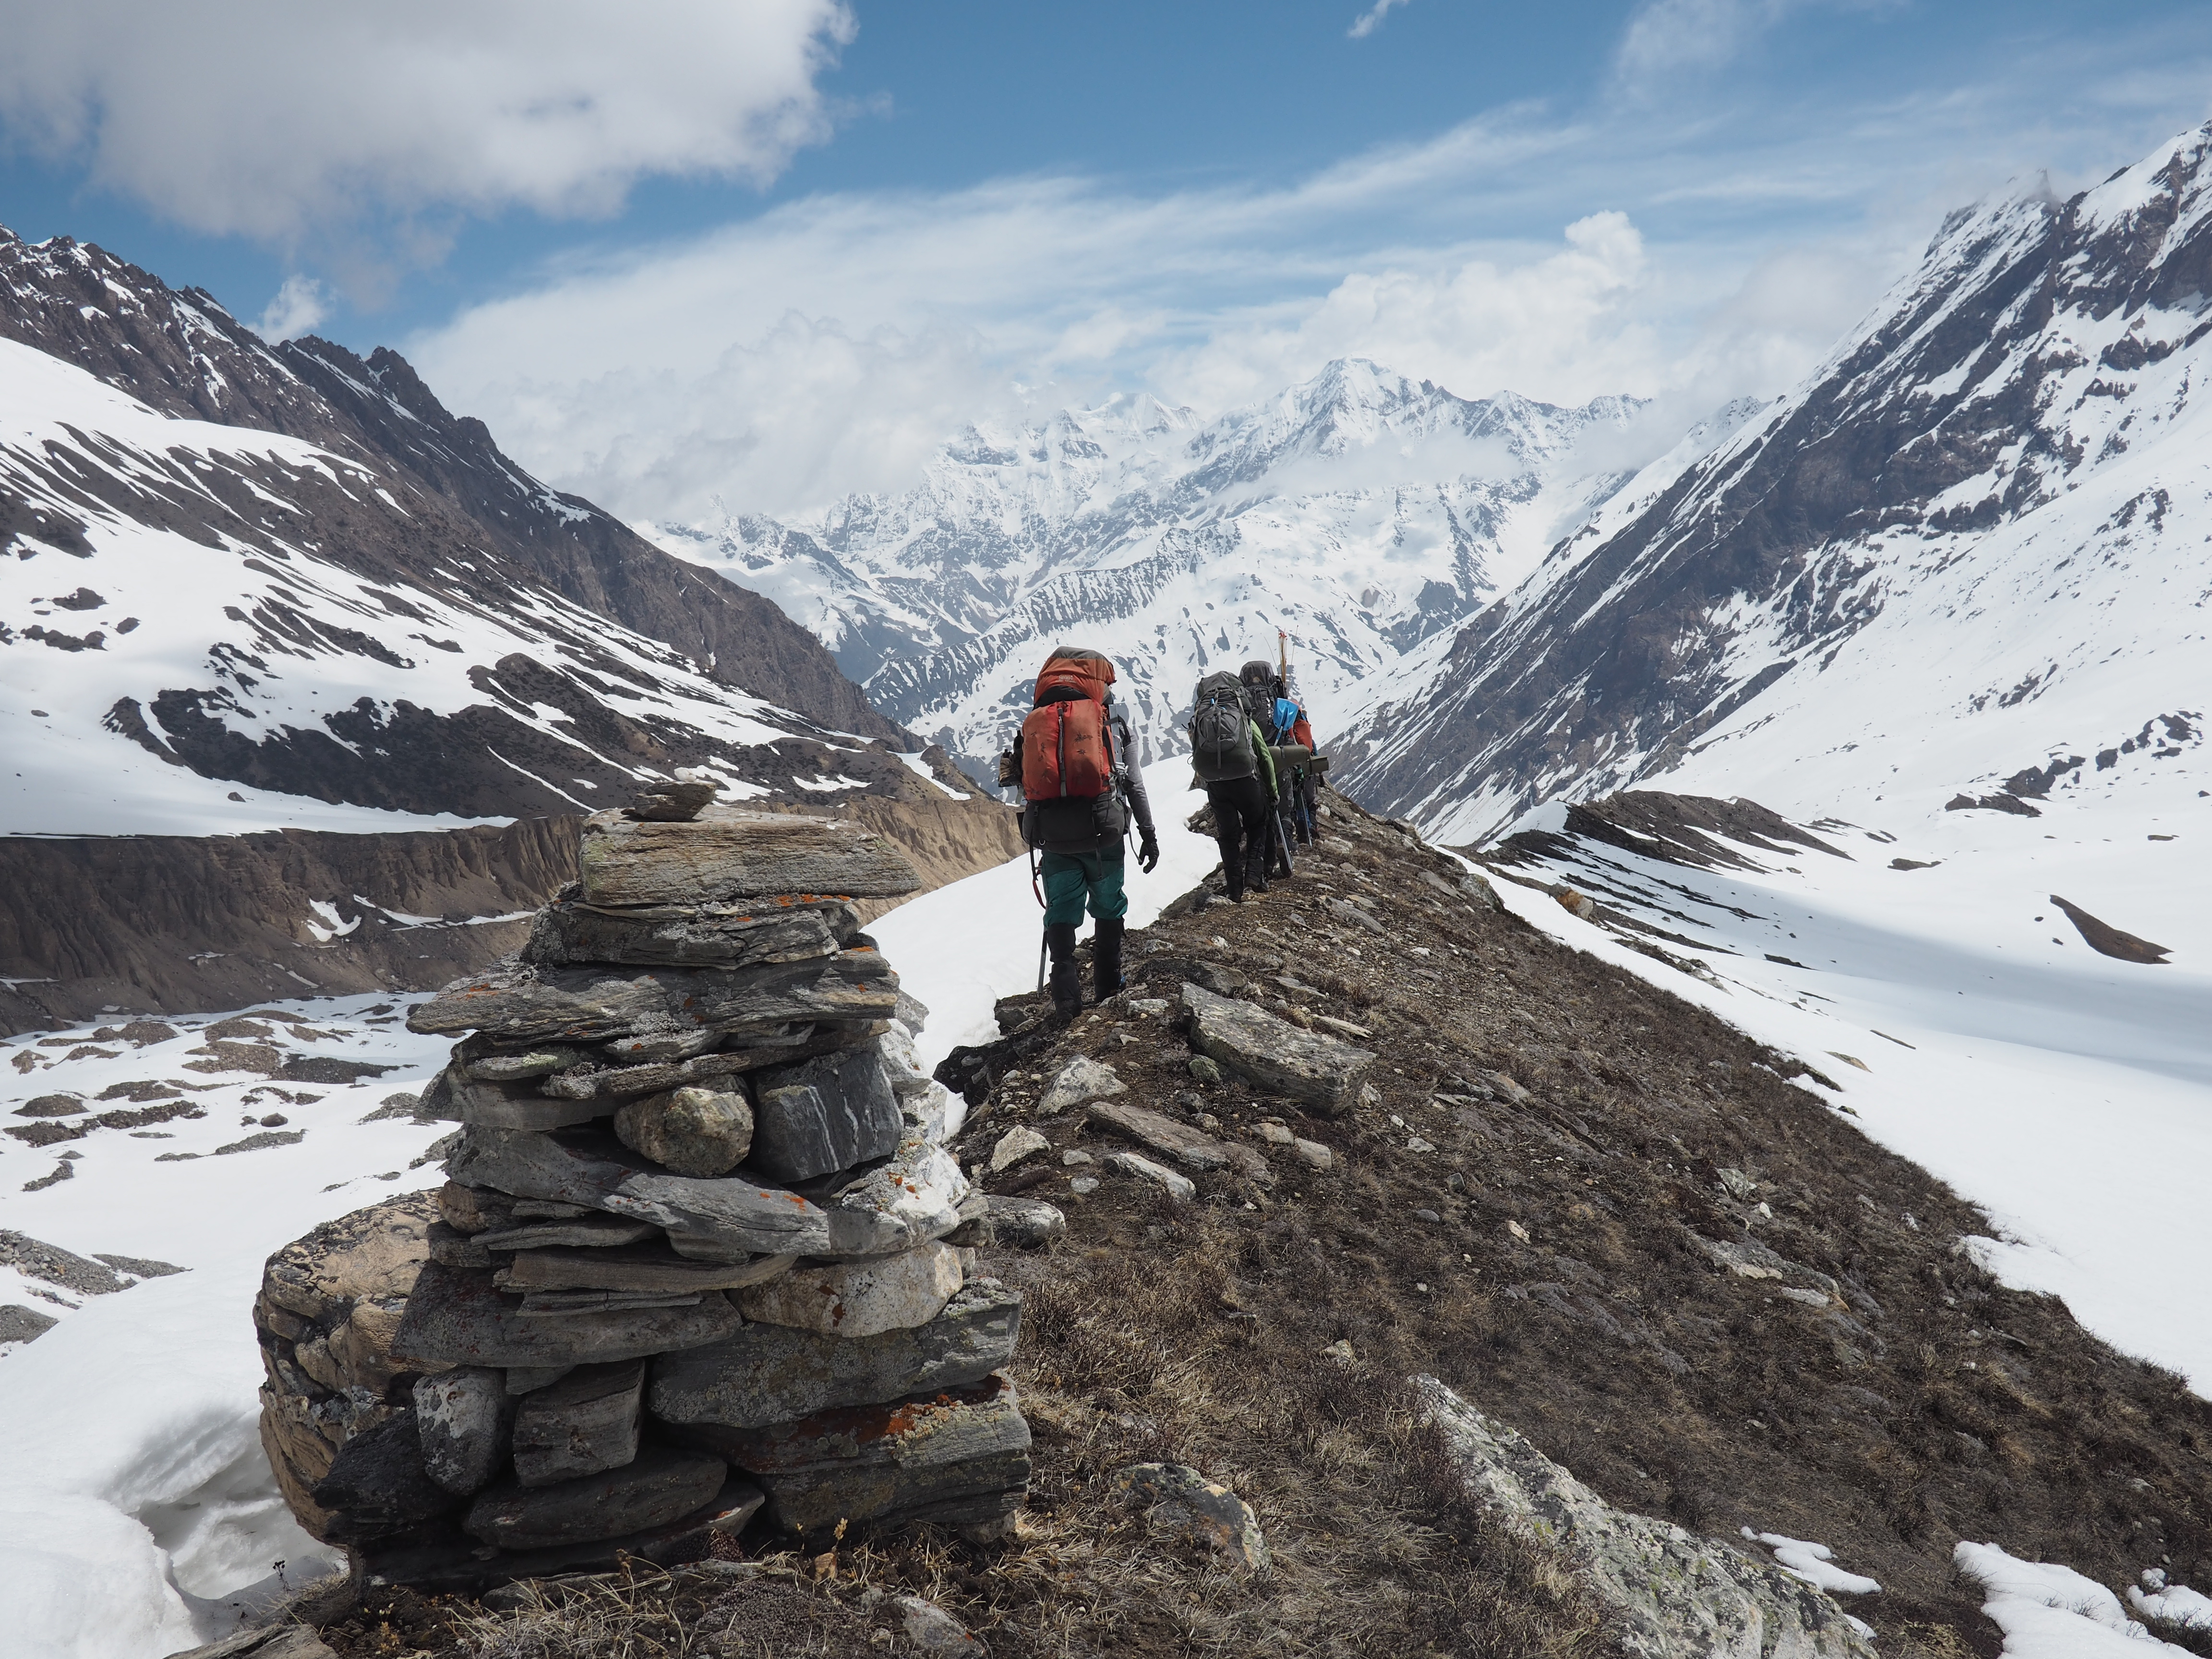 Gap Year Program - NOLS Himalaya Mountaineering  3